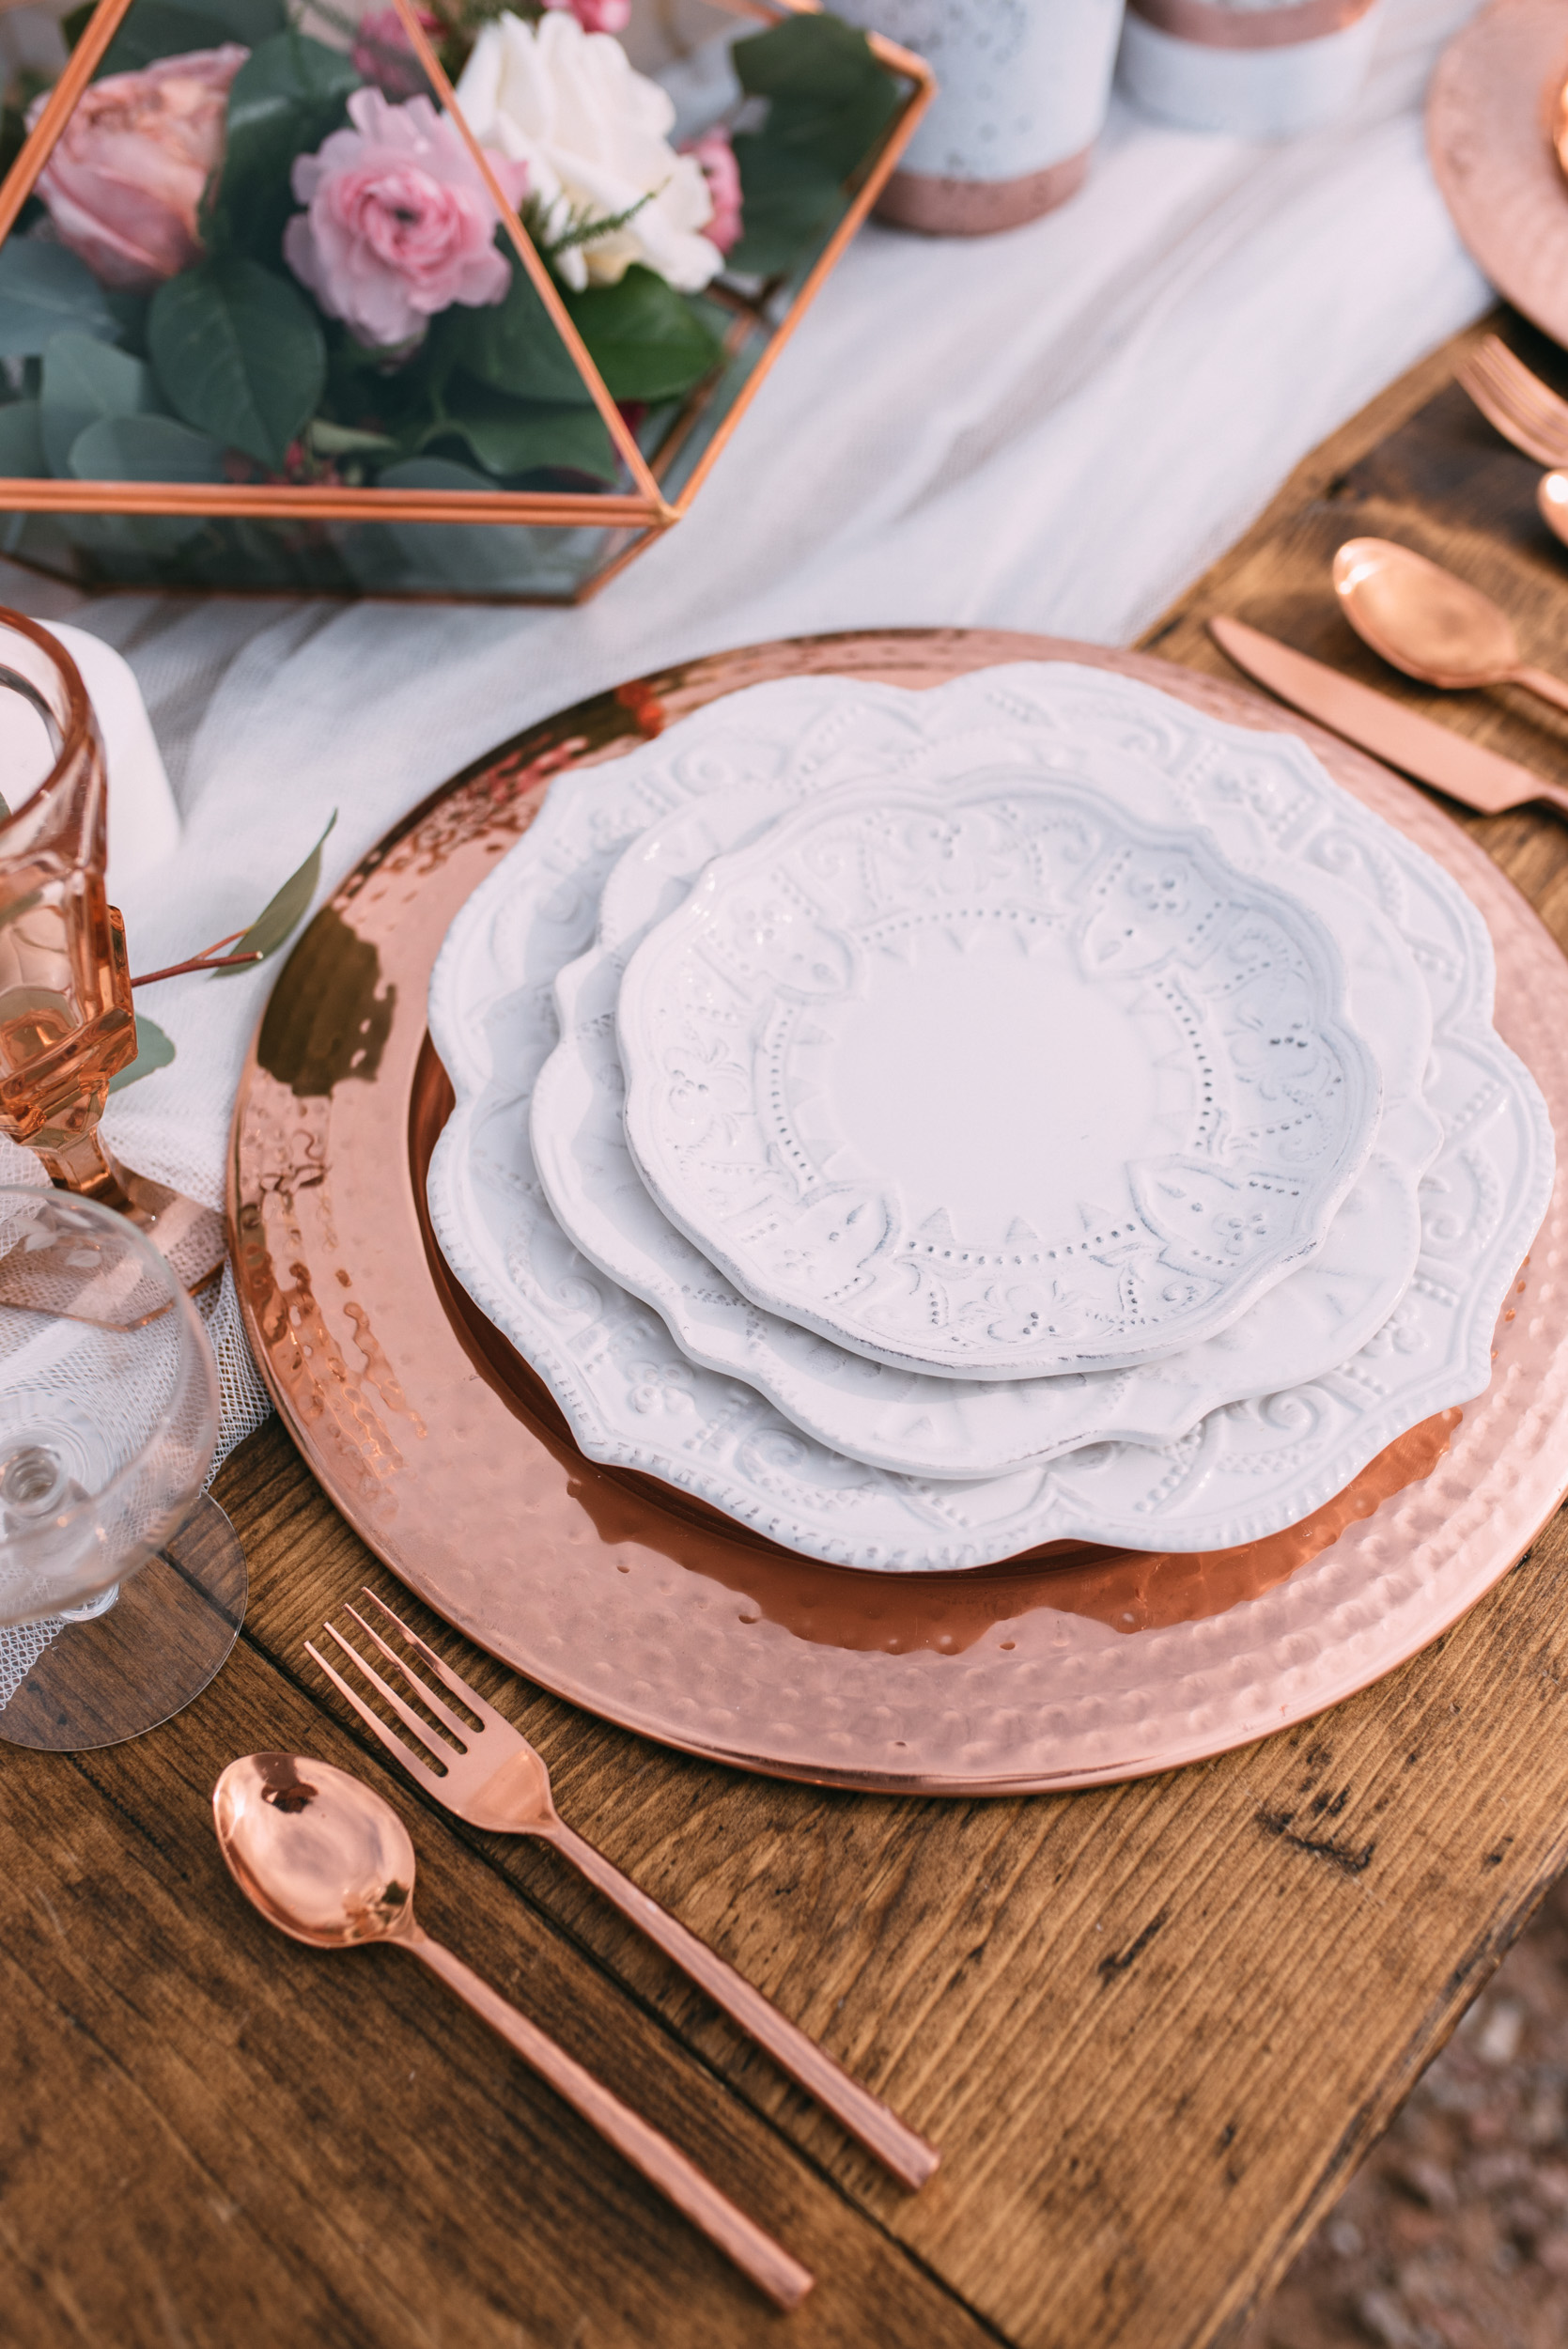 White and copper place setting for wedding wth copper utensils